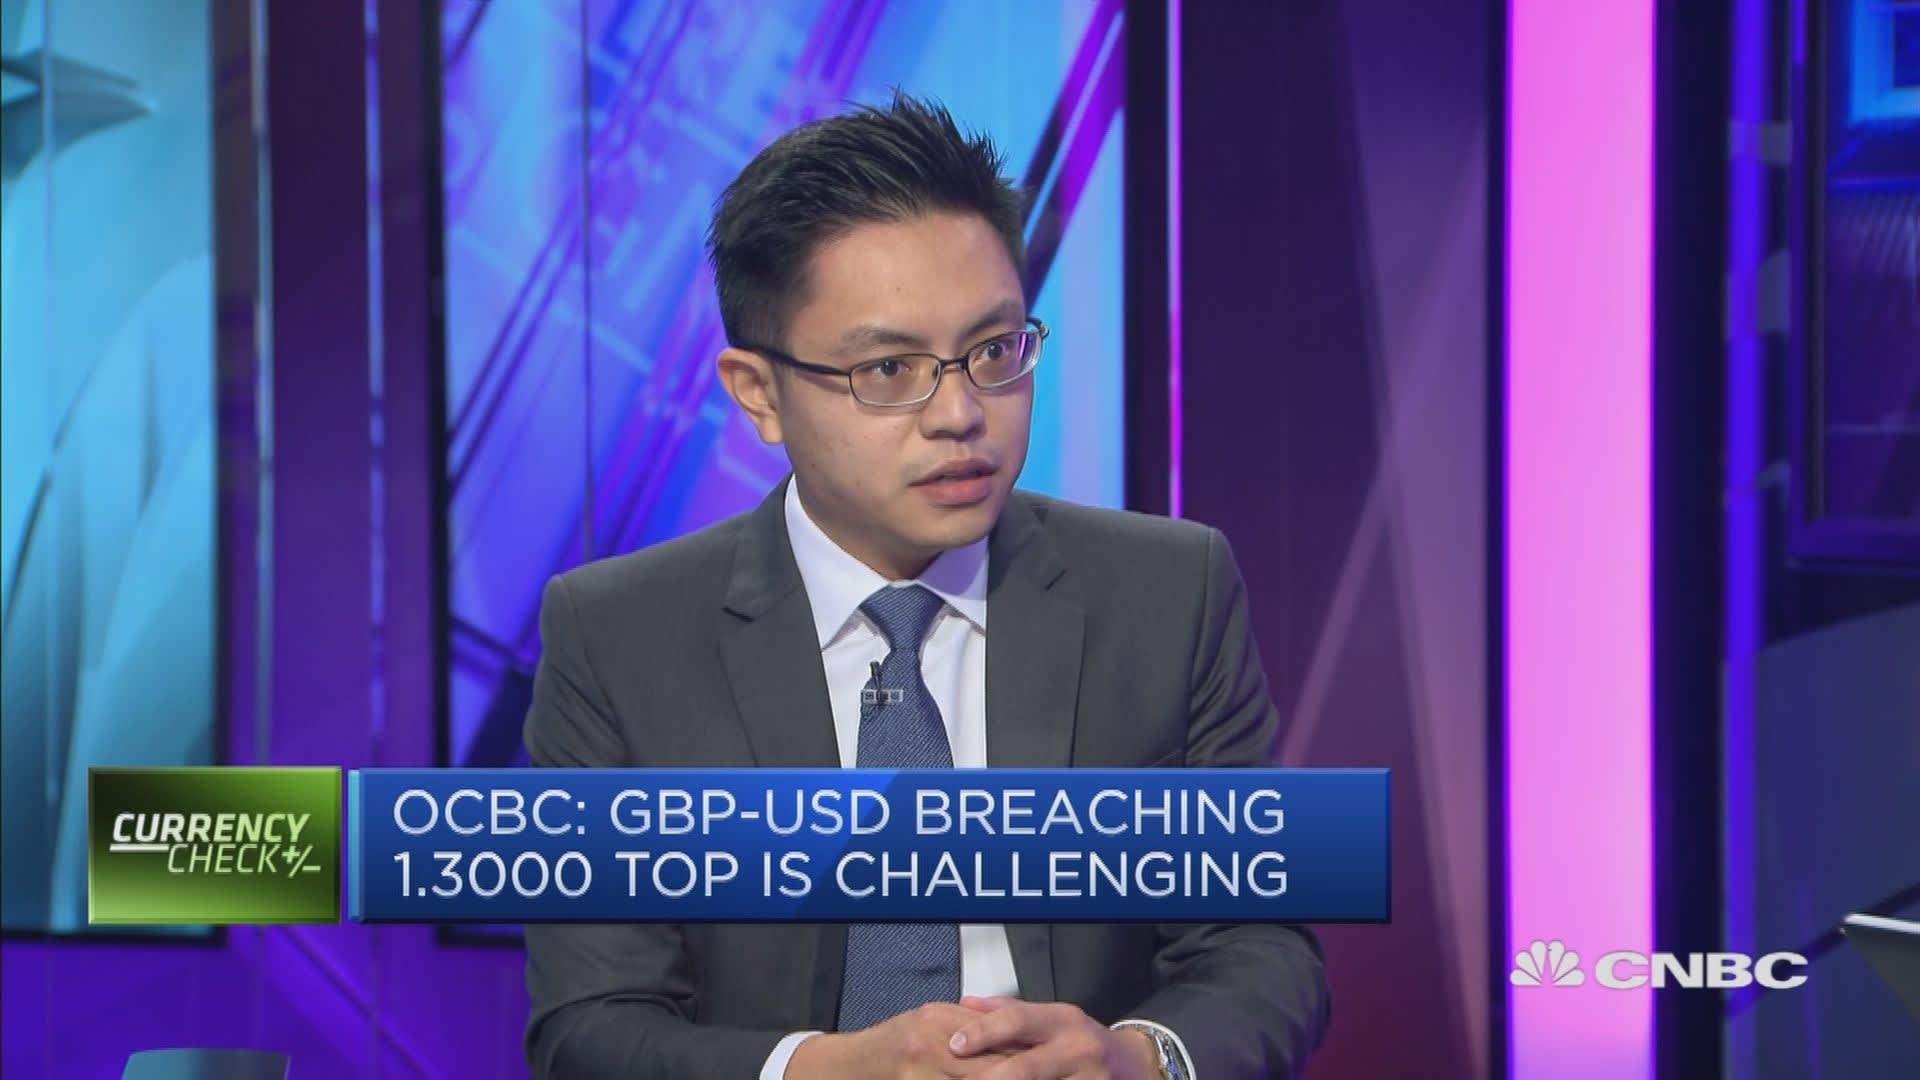 The 1.30 handle is a 'strong cap' for the pound for now: OCBC